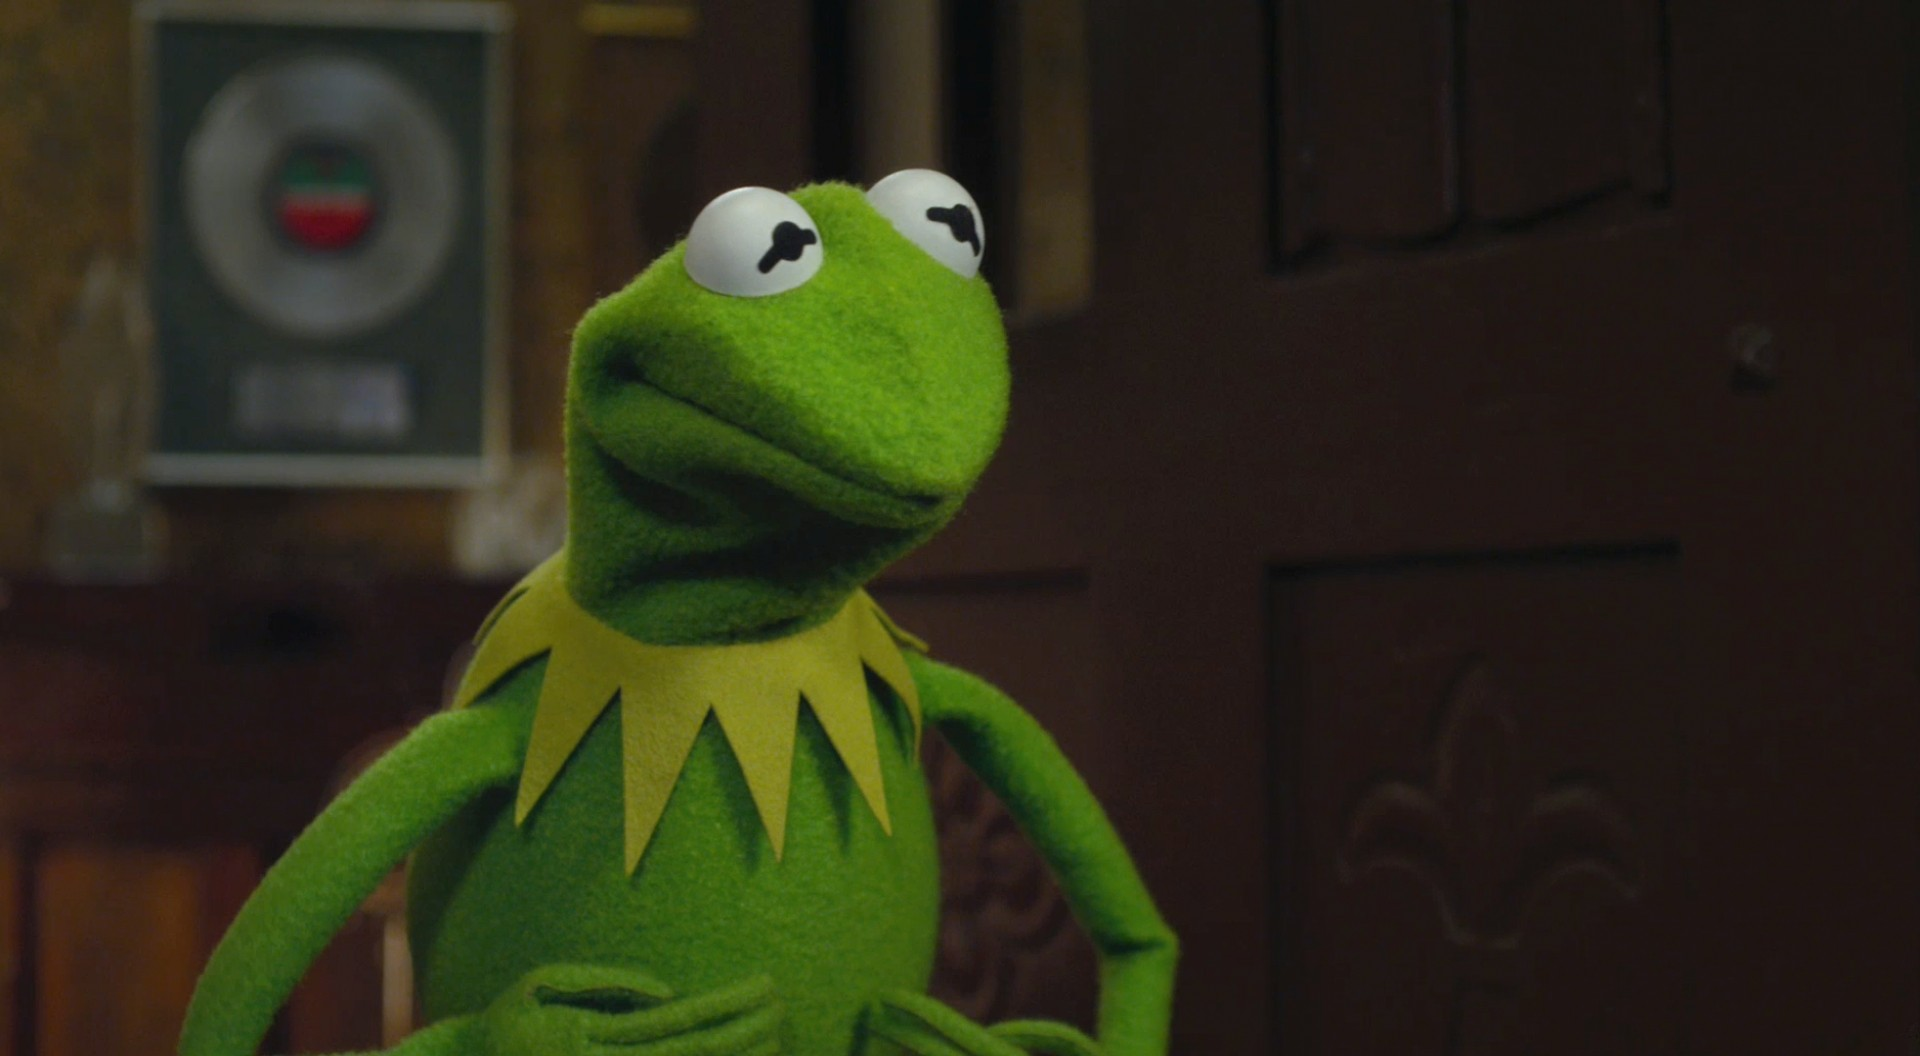 10 Times The Egyptian Kermit Was Wiser Than Most